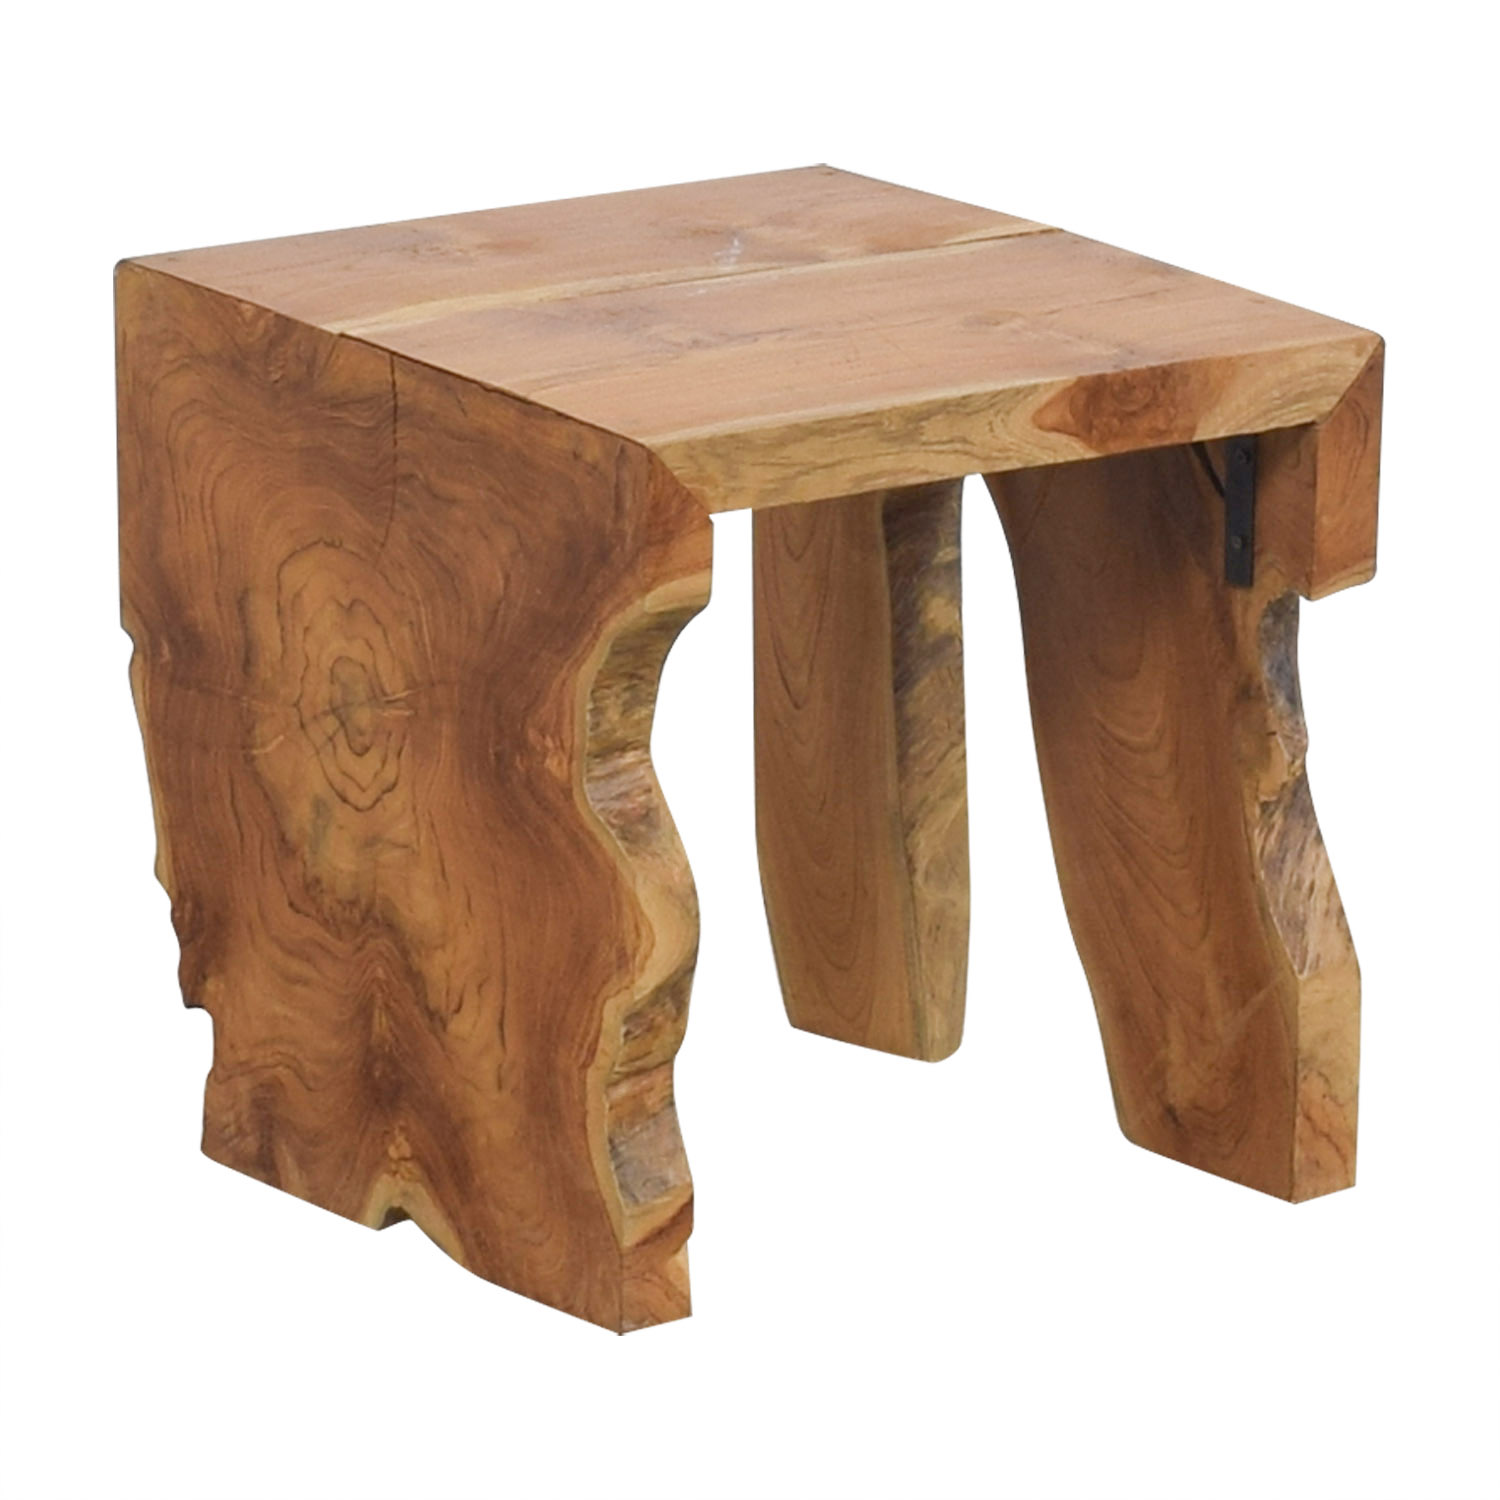 55% OFF - Teak Wood Side Table / Tables